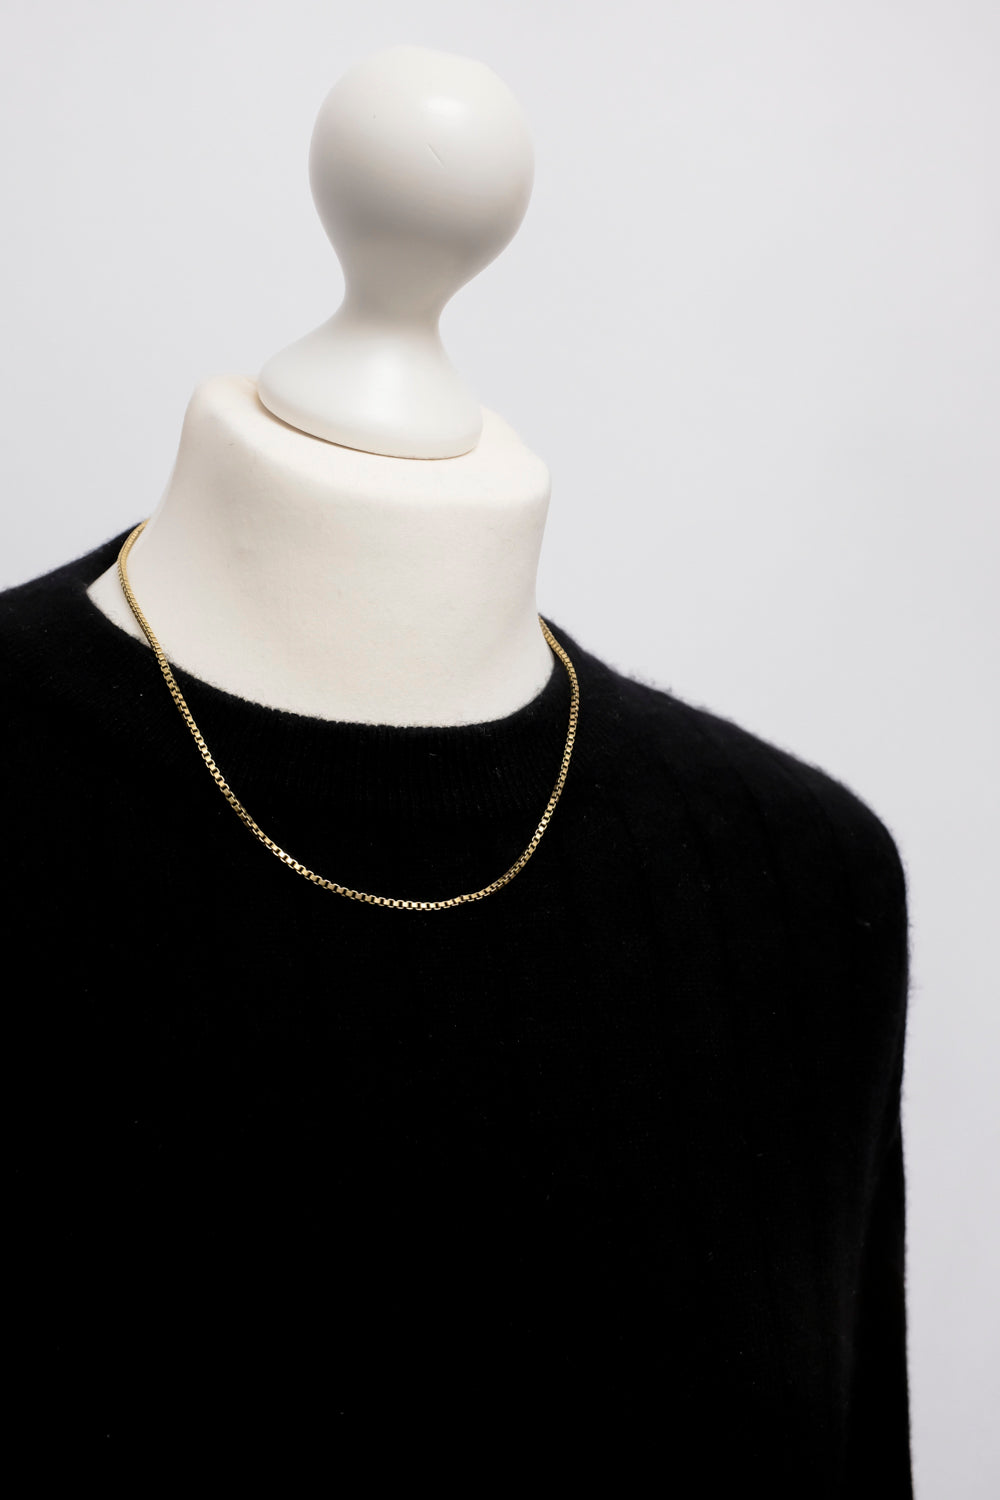 0022_CLASSY GOLD 925 NECKLACE